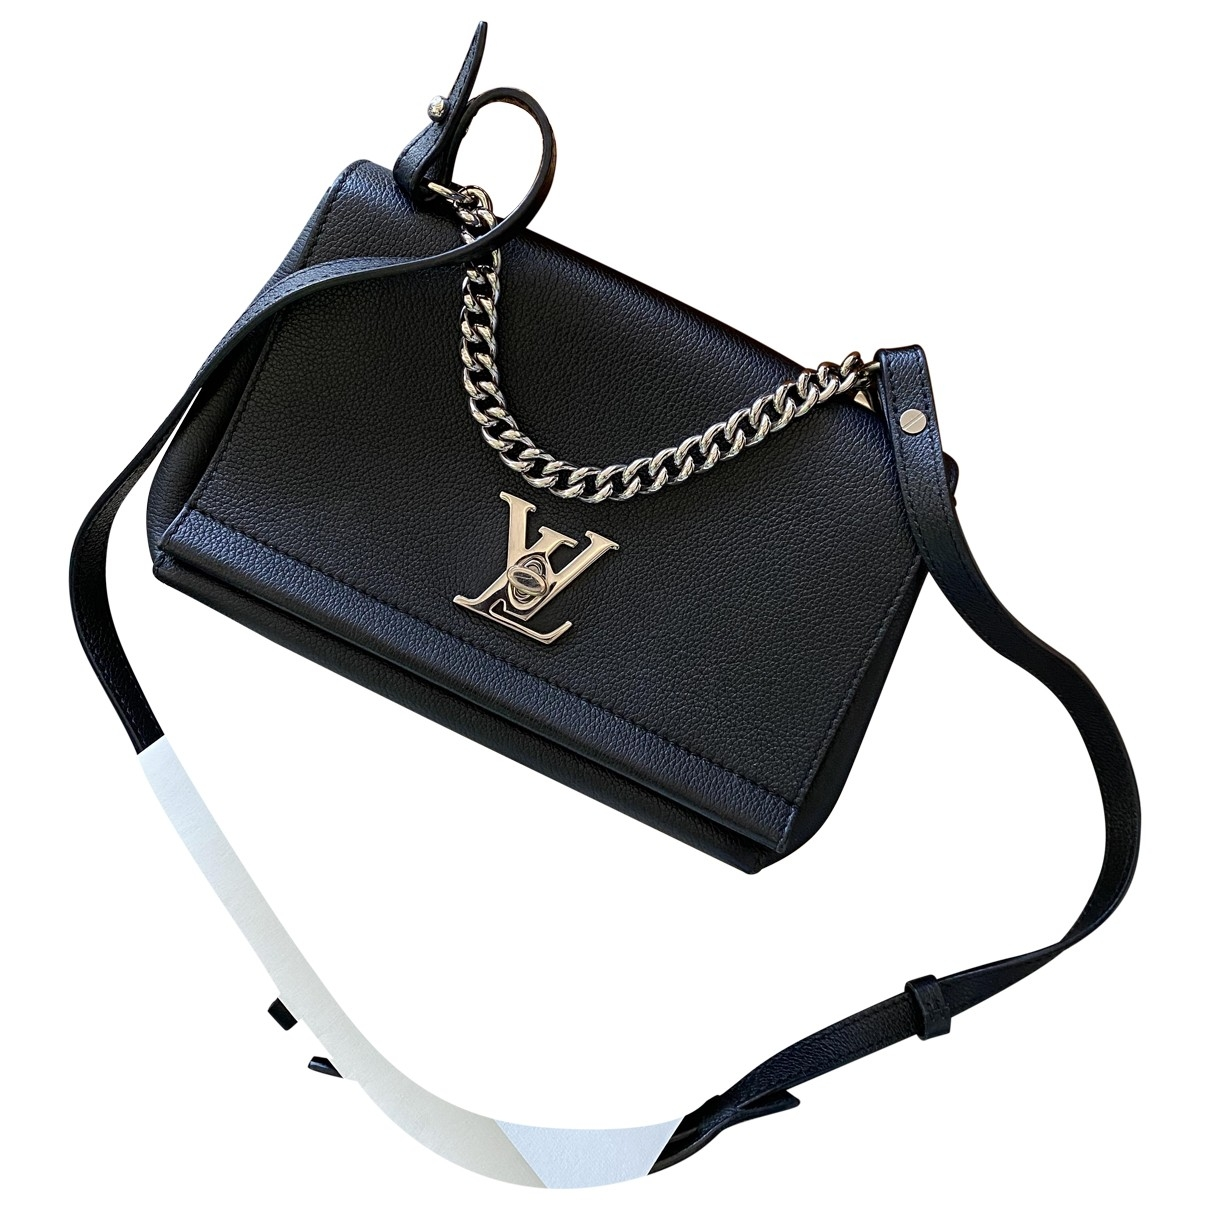 Louis Vuitton Lockme Handtasche in  Schwarz Leder